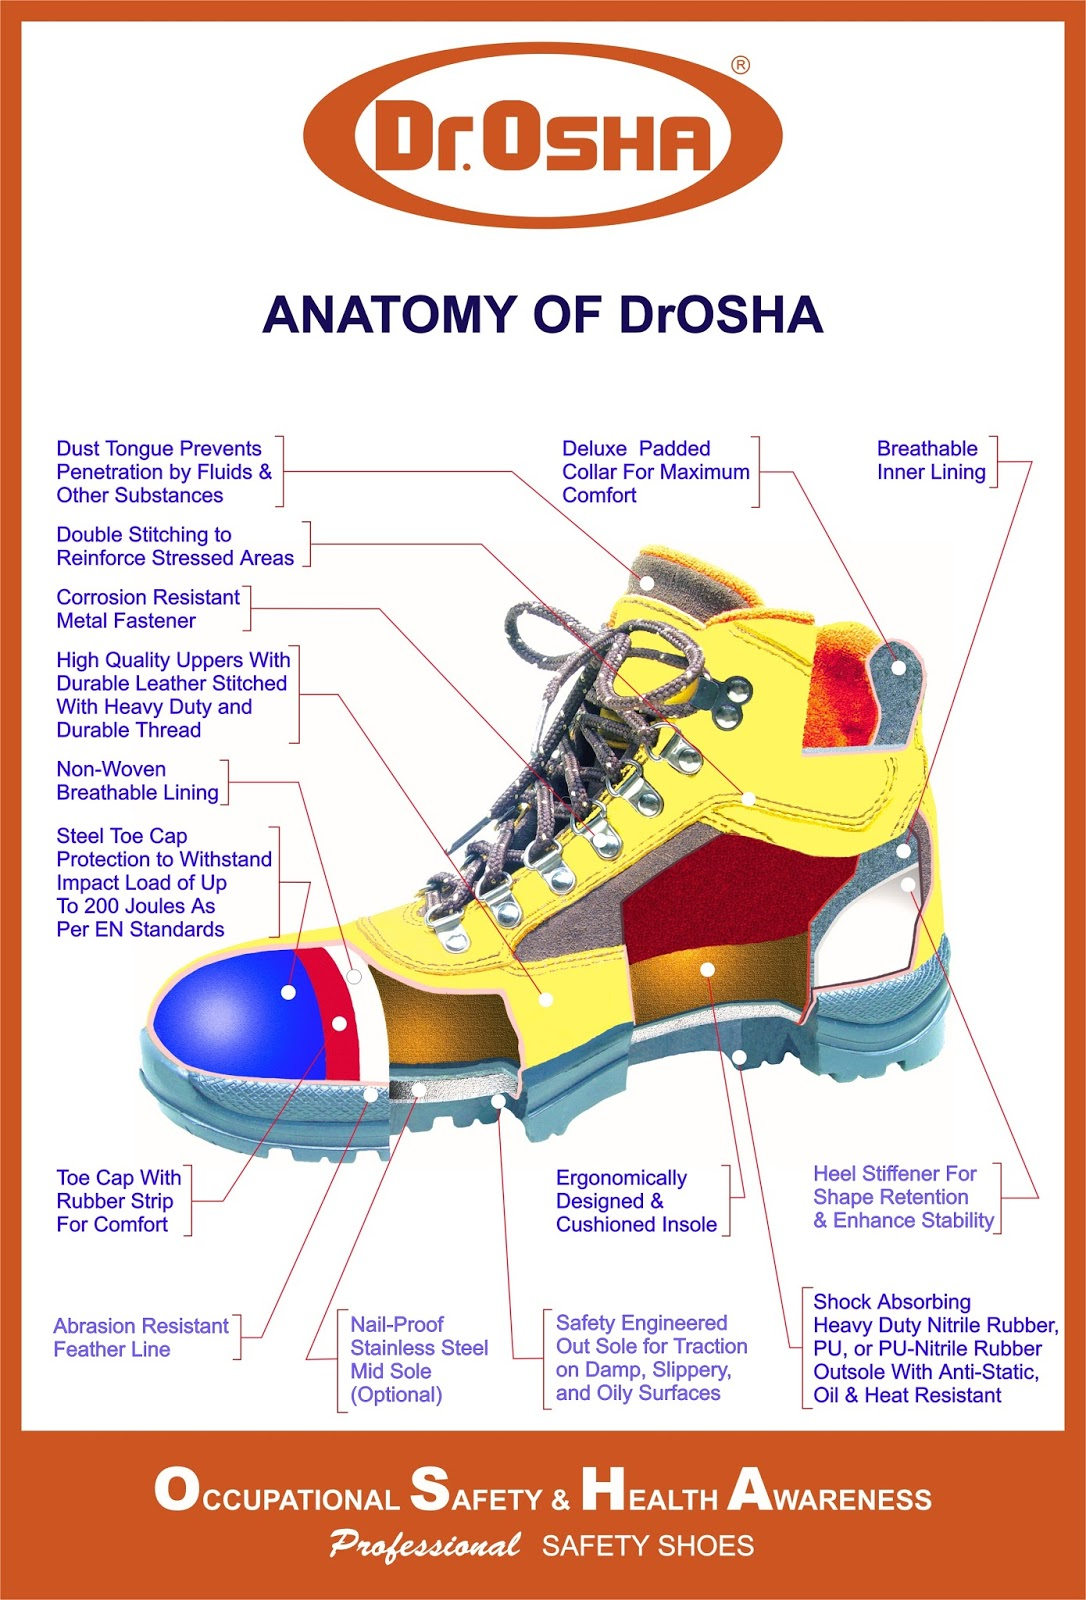 SAFETY SHOES ANATOMY DR OSHA SAFETY SHOES | BUZZ PICTURE